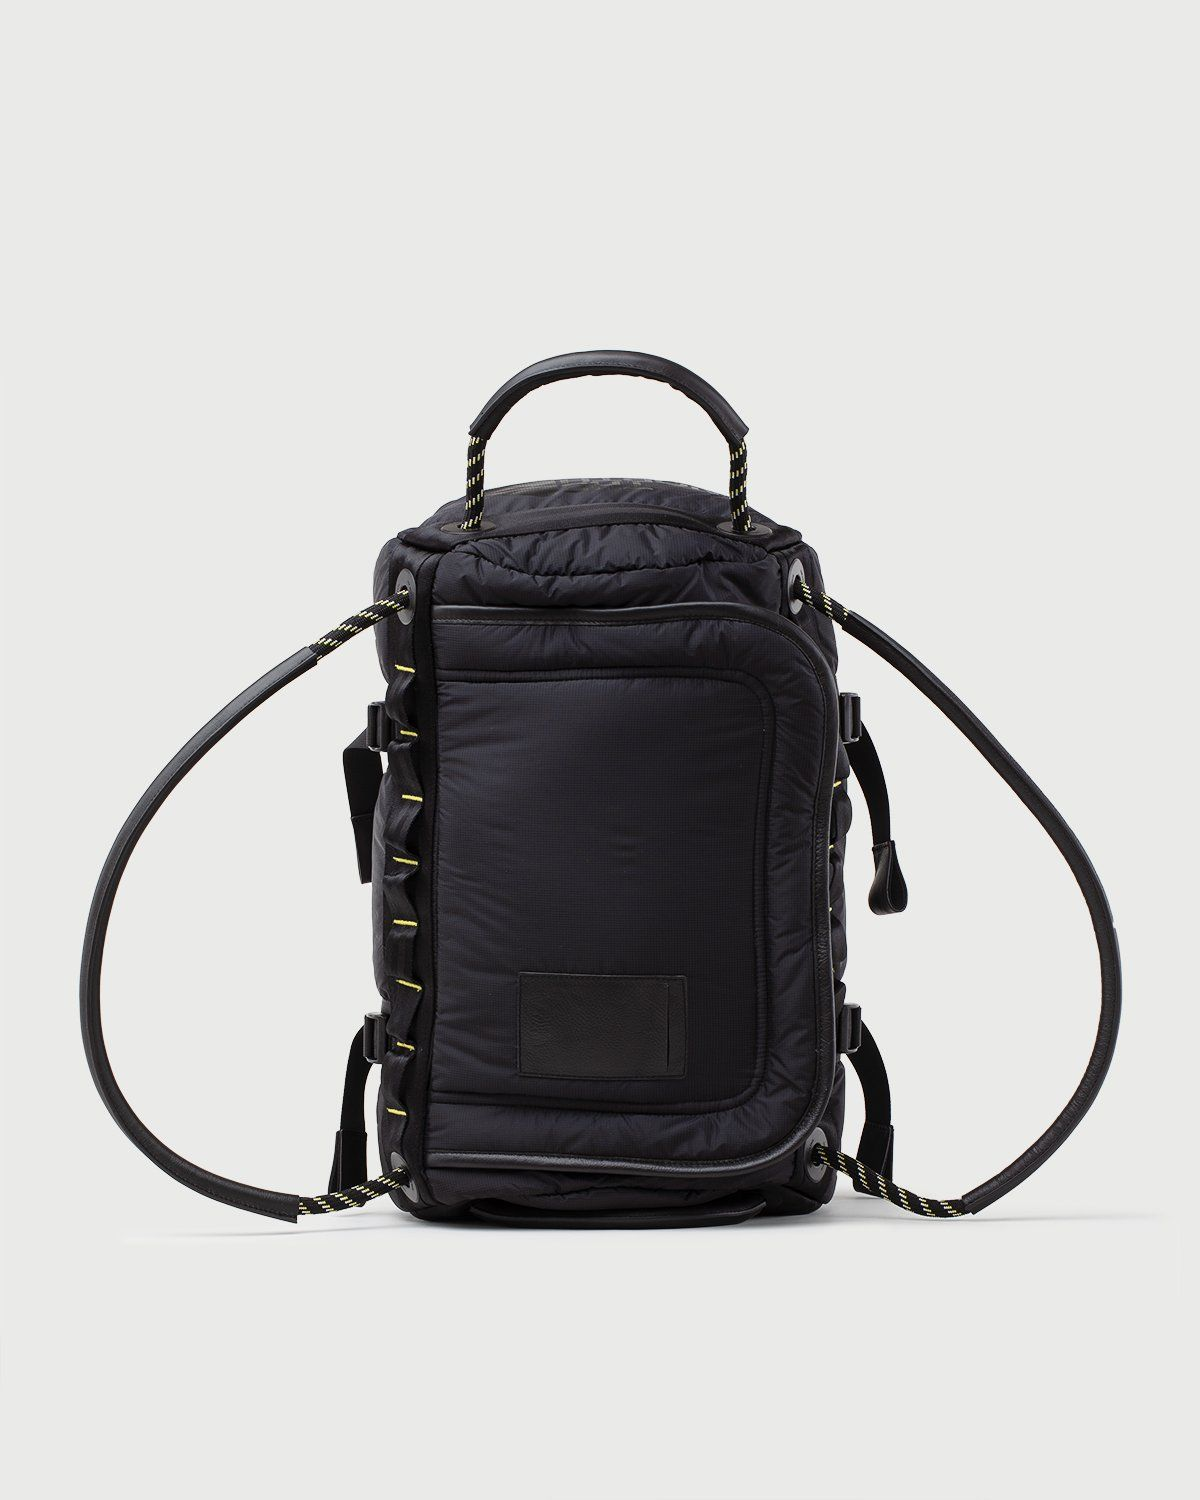 The North Face Black Series - Base Camp Duffel Black - Image 1